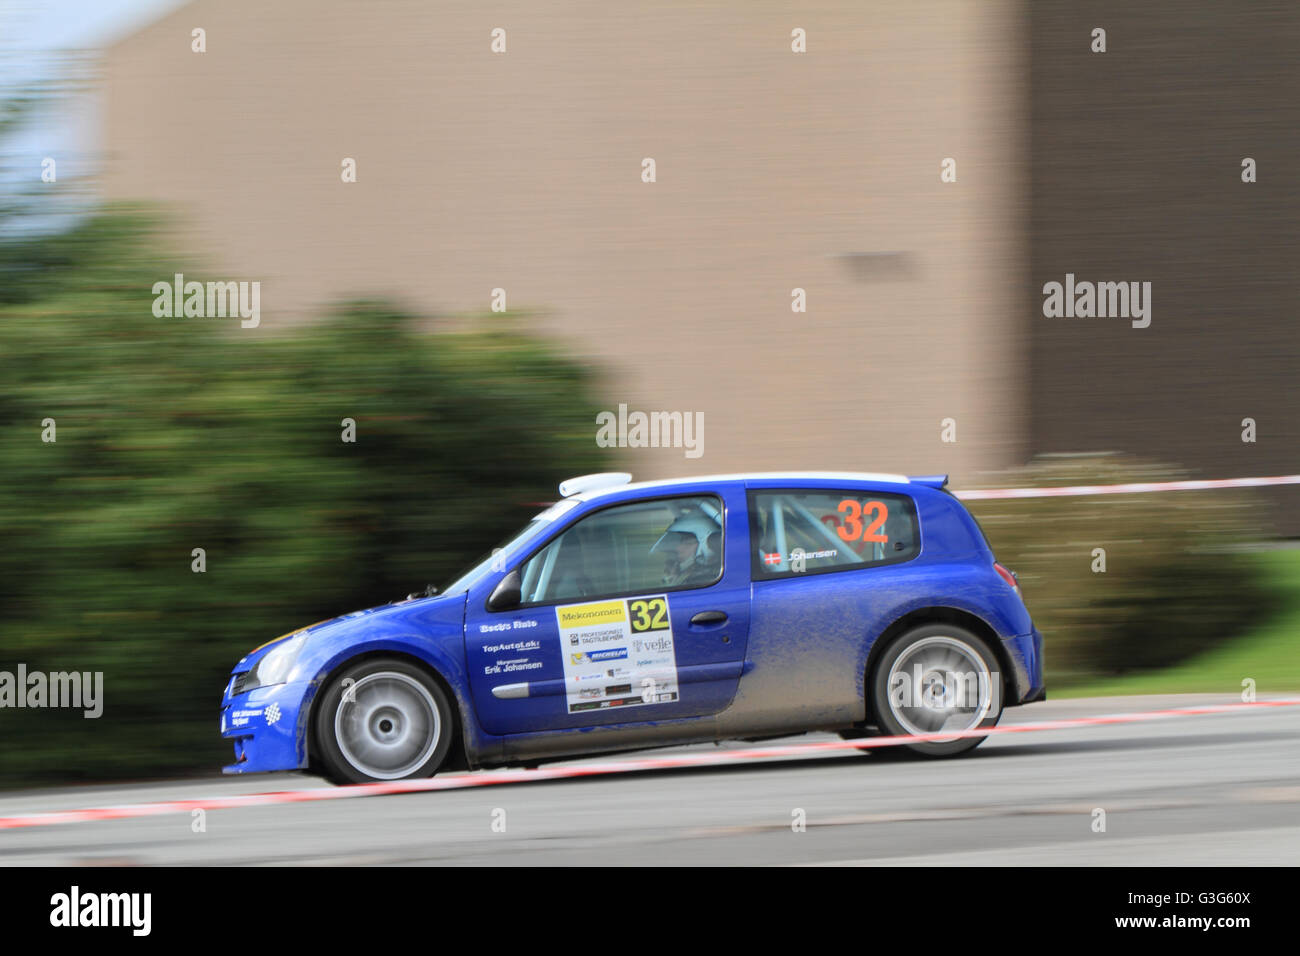 hight resolution of renault clio ii maxi 2000 raced at the 2013 mekonomen danish rally championships in vejle